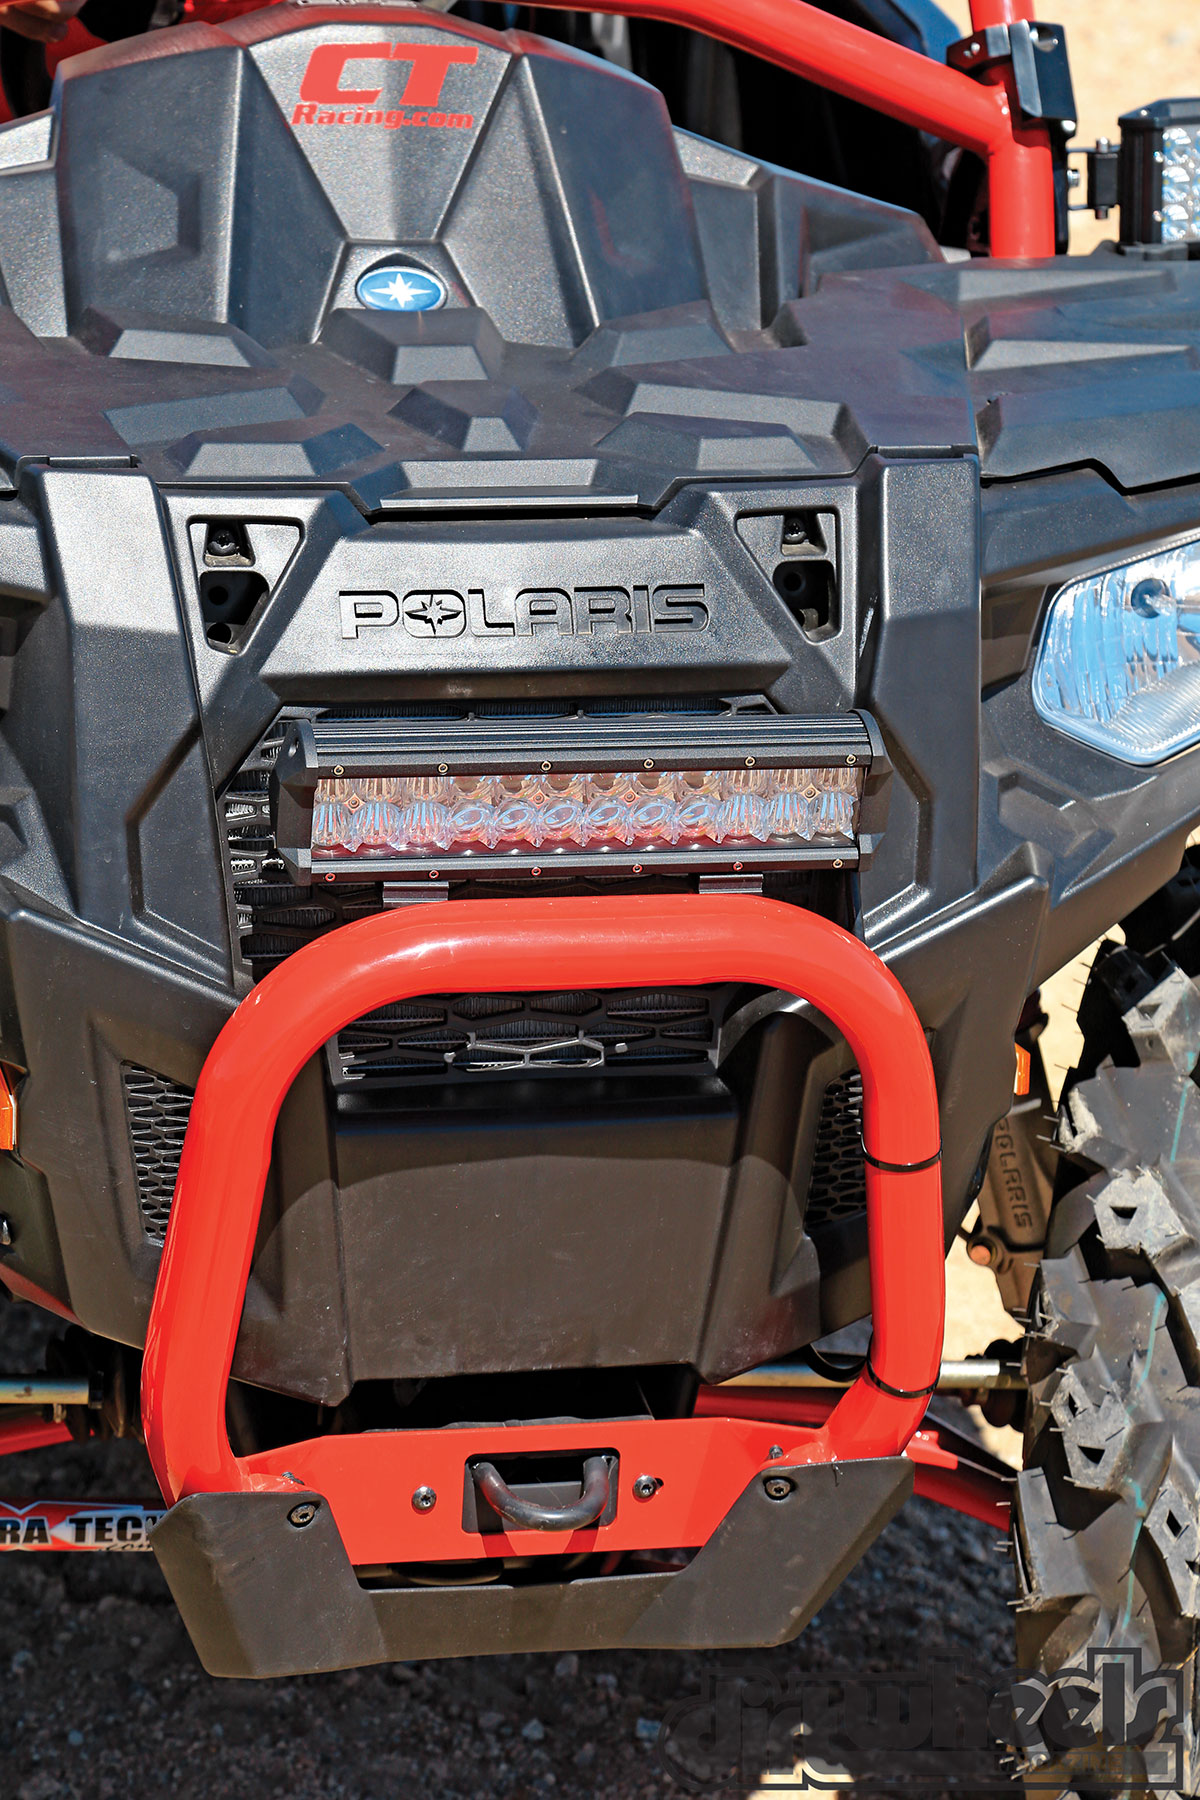 We like the compact light bar, and it is nice that the Polaris bumper retains the tow loop.